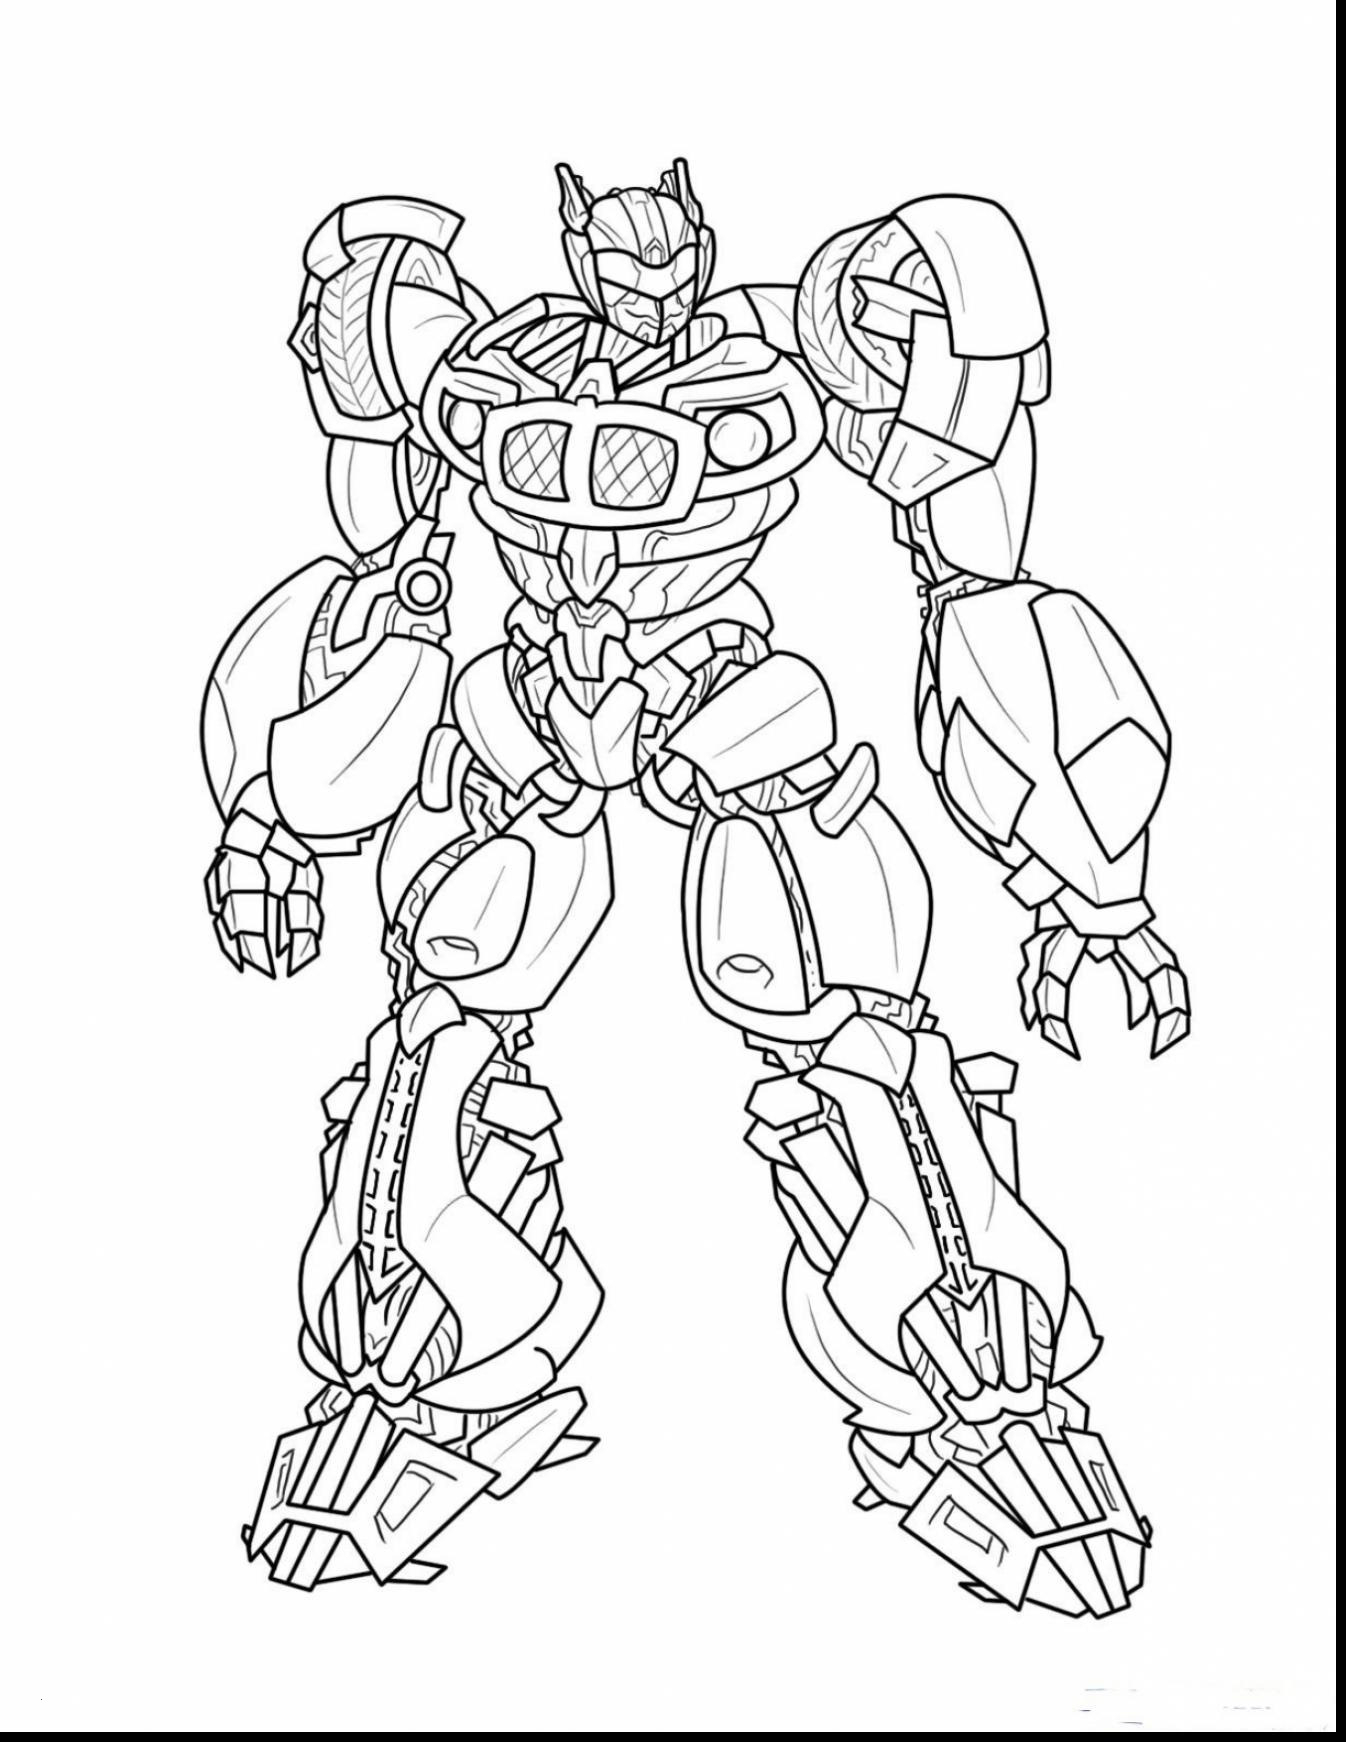 Bumblebee transformer coloring pages printable transformer coloring pages transformers coloring pages to print amazing bumblebee